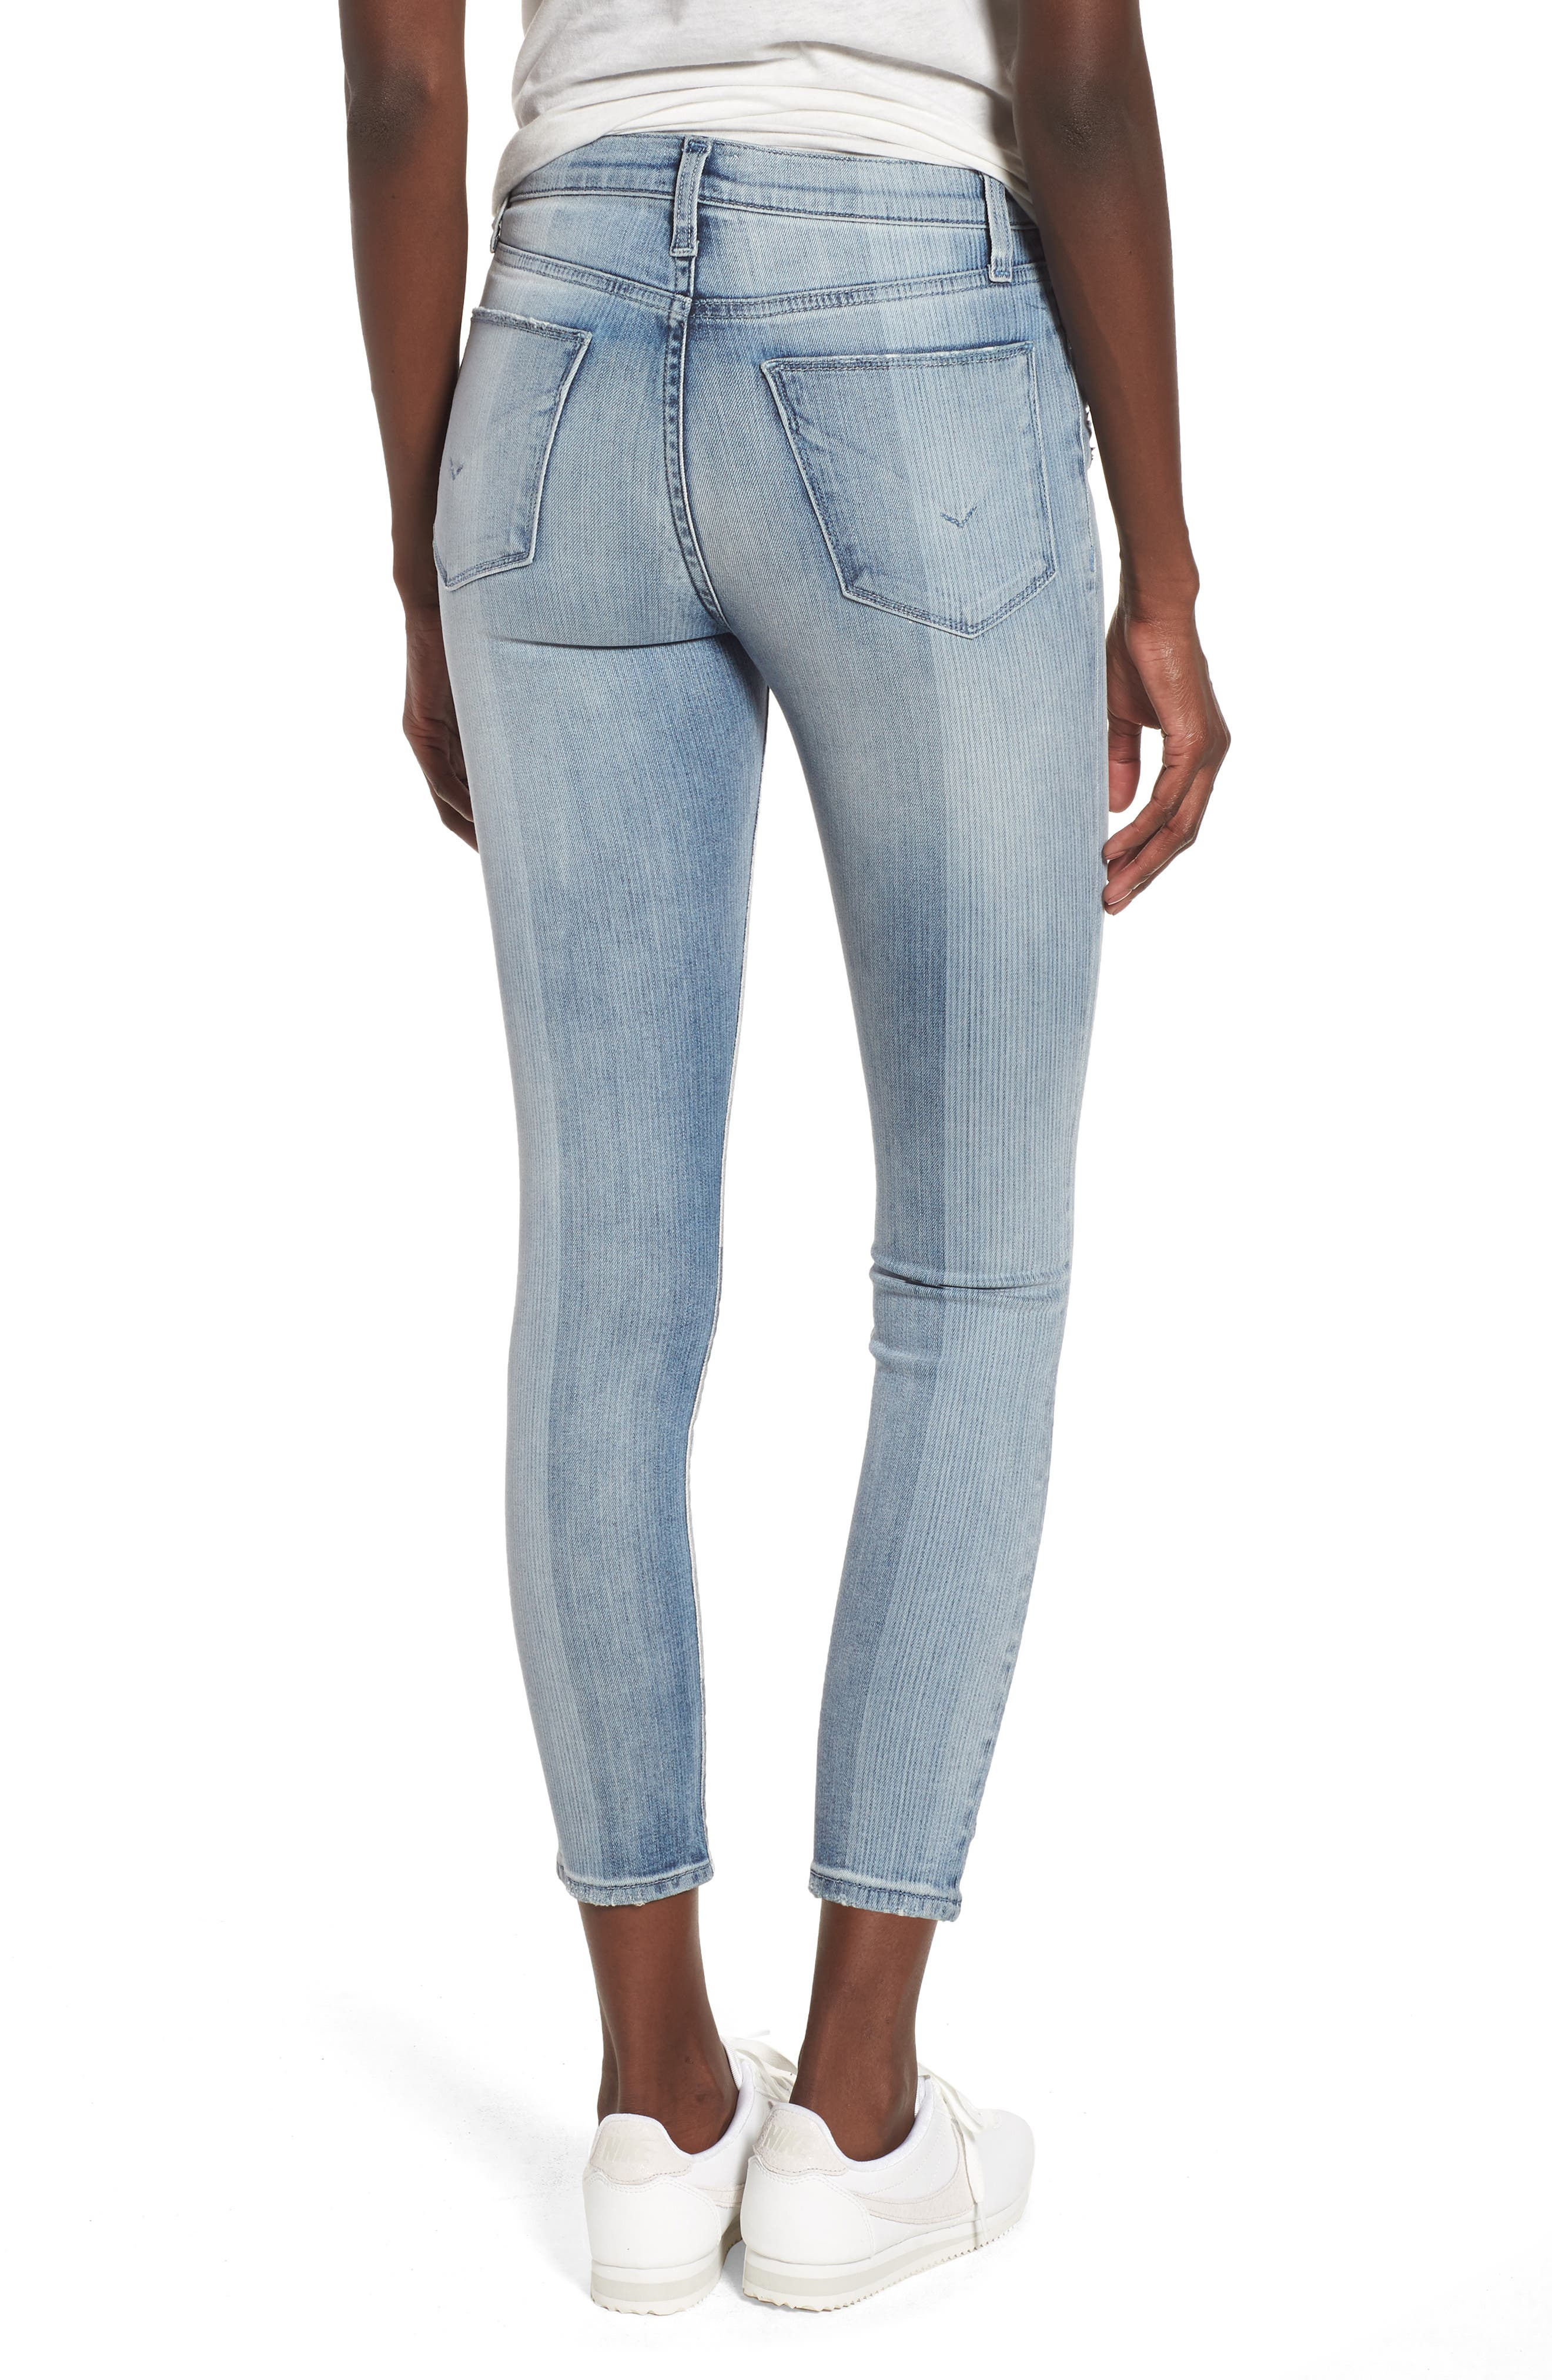 Barbara High Waist Crop Skinny Jeans,                             Alternate thumbnail 2, color,                             Purest Expression